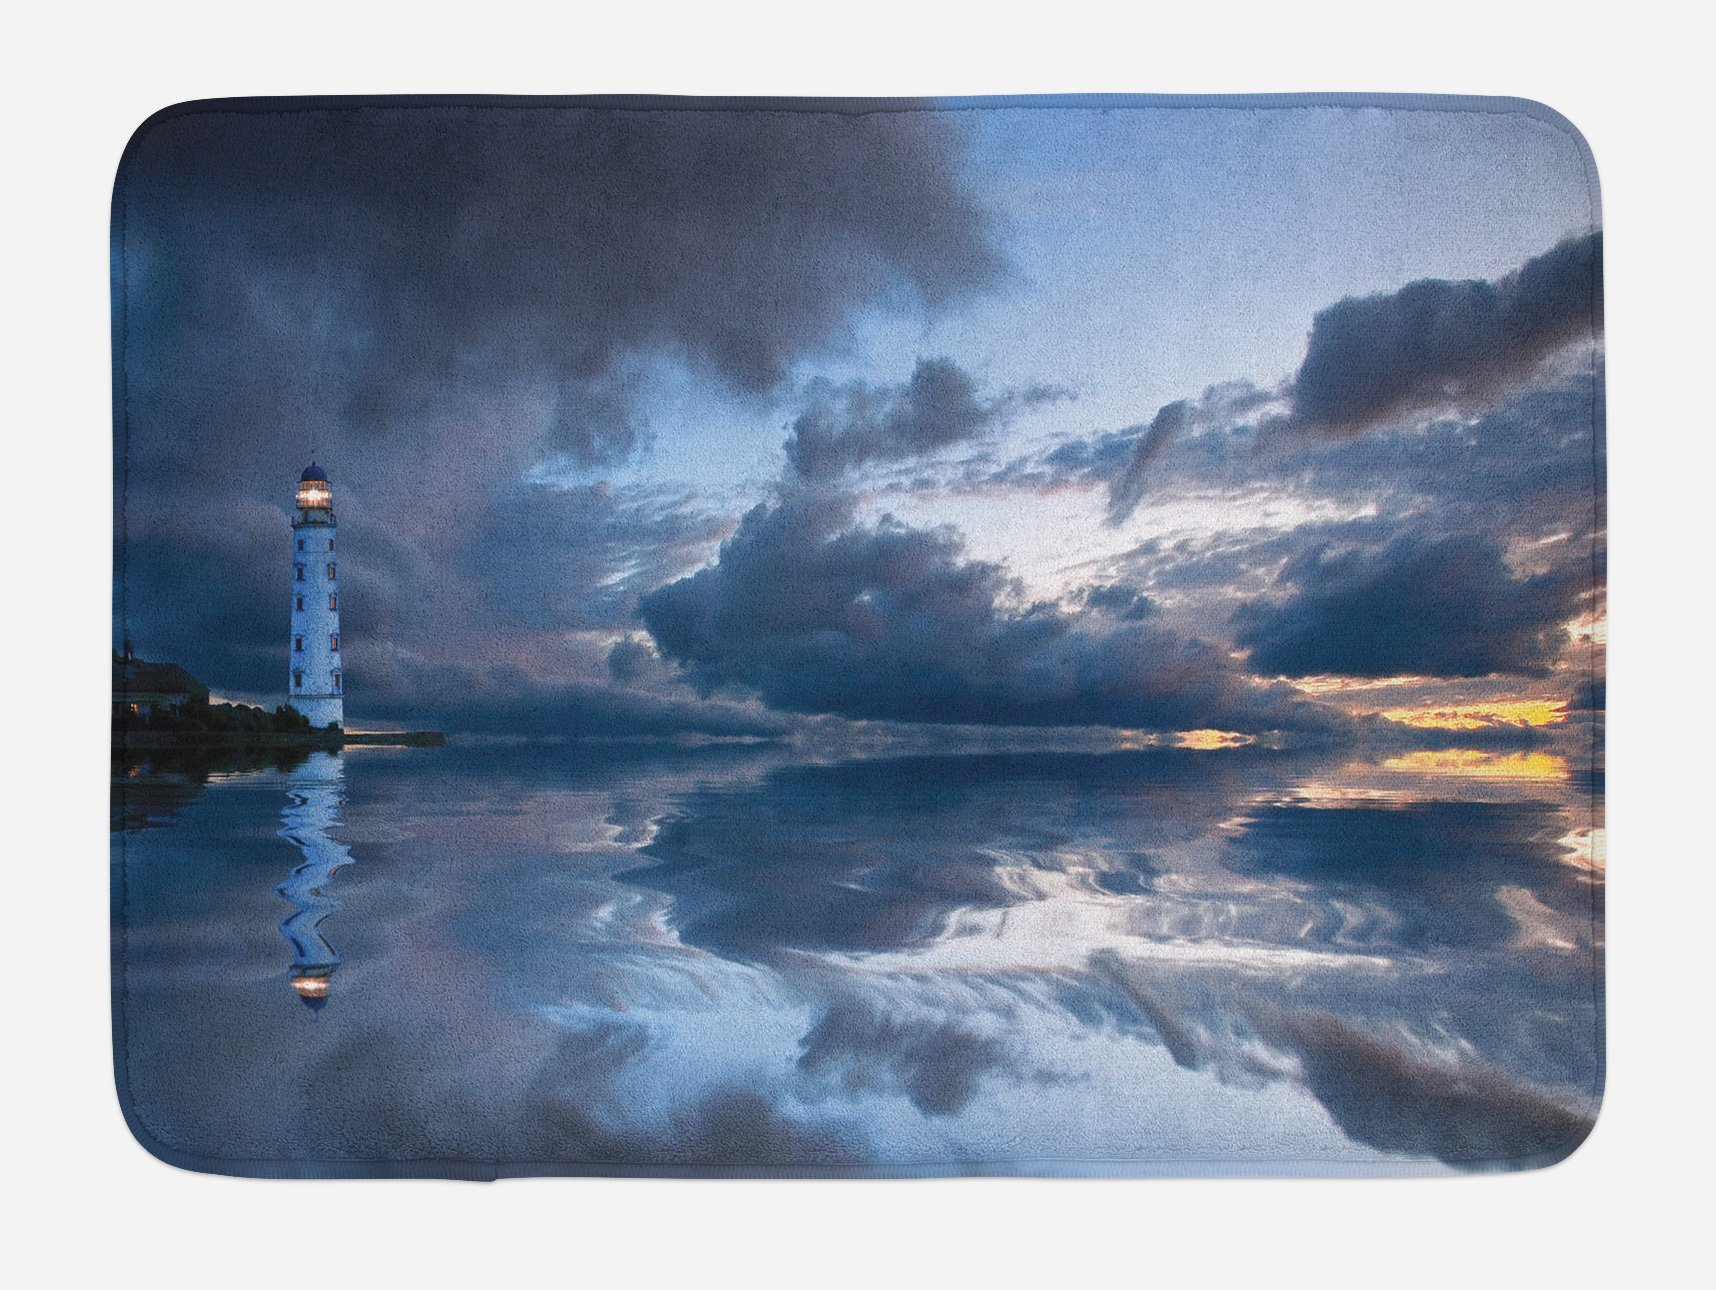 Lunarable Lighthouse Bath Mat, Lighthouse Sailing Dark Clouds Reflection on Atlantic Ccean Rainy Weather Shadow, Plush Bathroom Decor Mat with Non Slip Backing, 29.5 W X 17.5 W Inches, Blue Gray